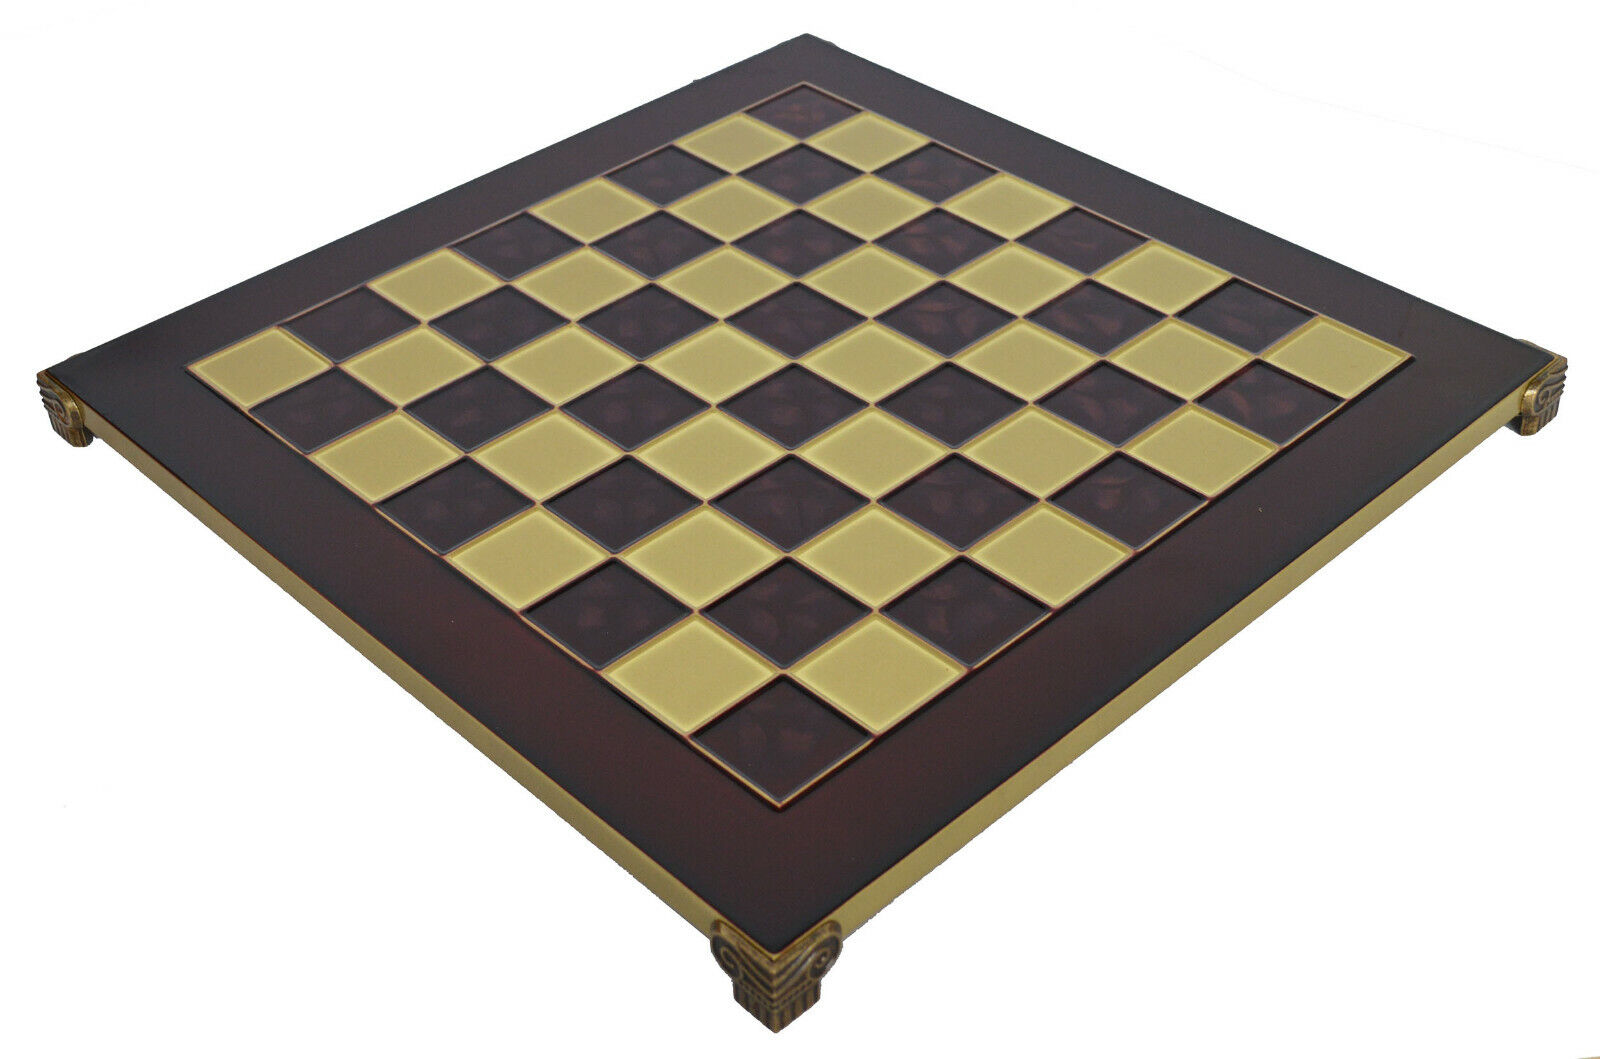 Manopoulos Brass & rot Chess Board - 1.375  Squares